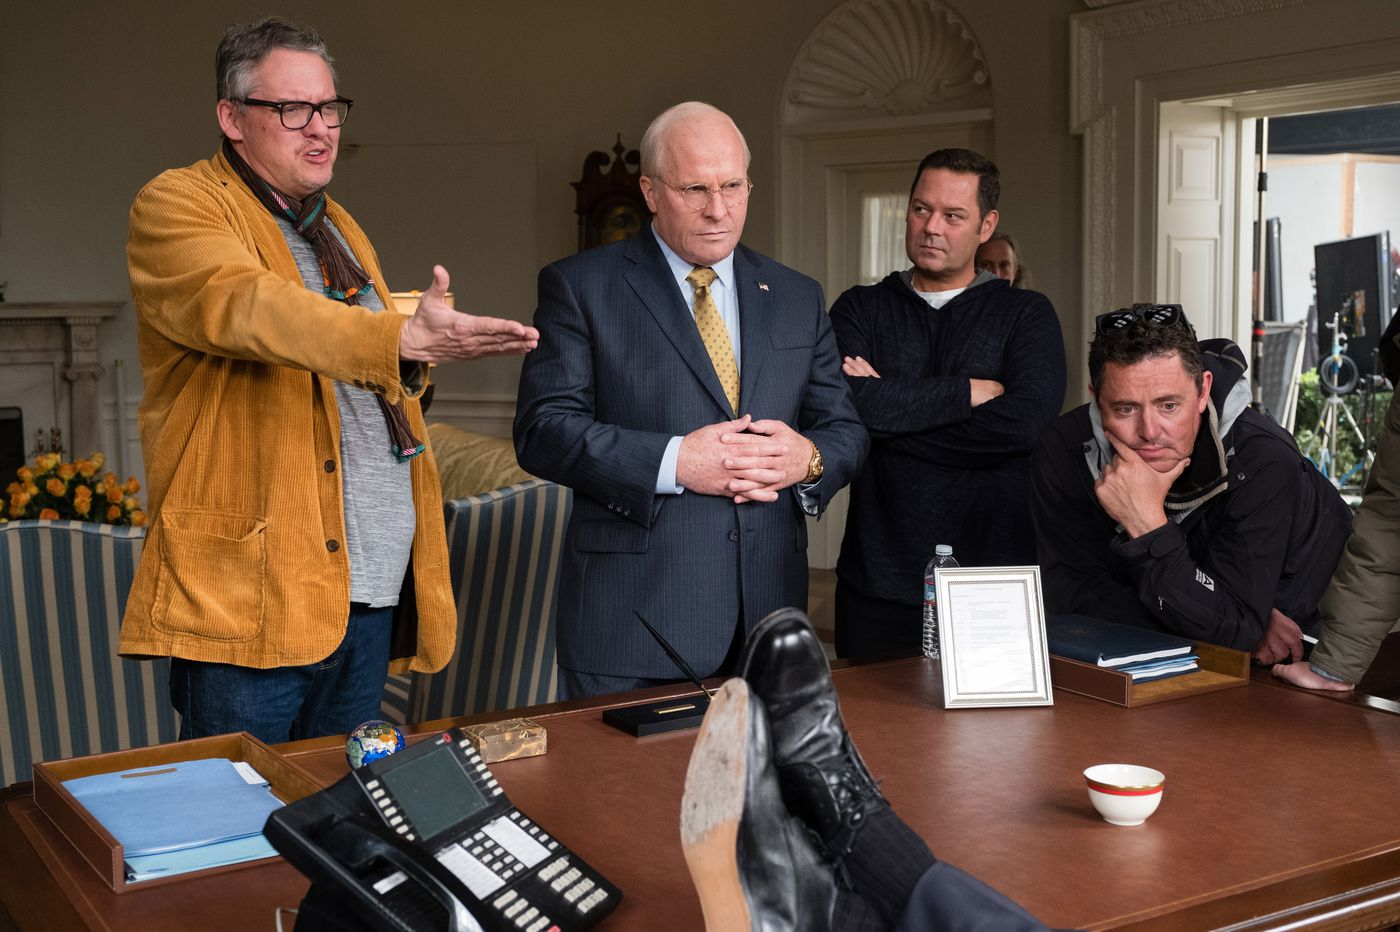 Director Adam McKay talks Dick Cheney biopic 'Vice,' moving from comedy to drama, and how Philly